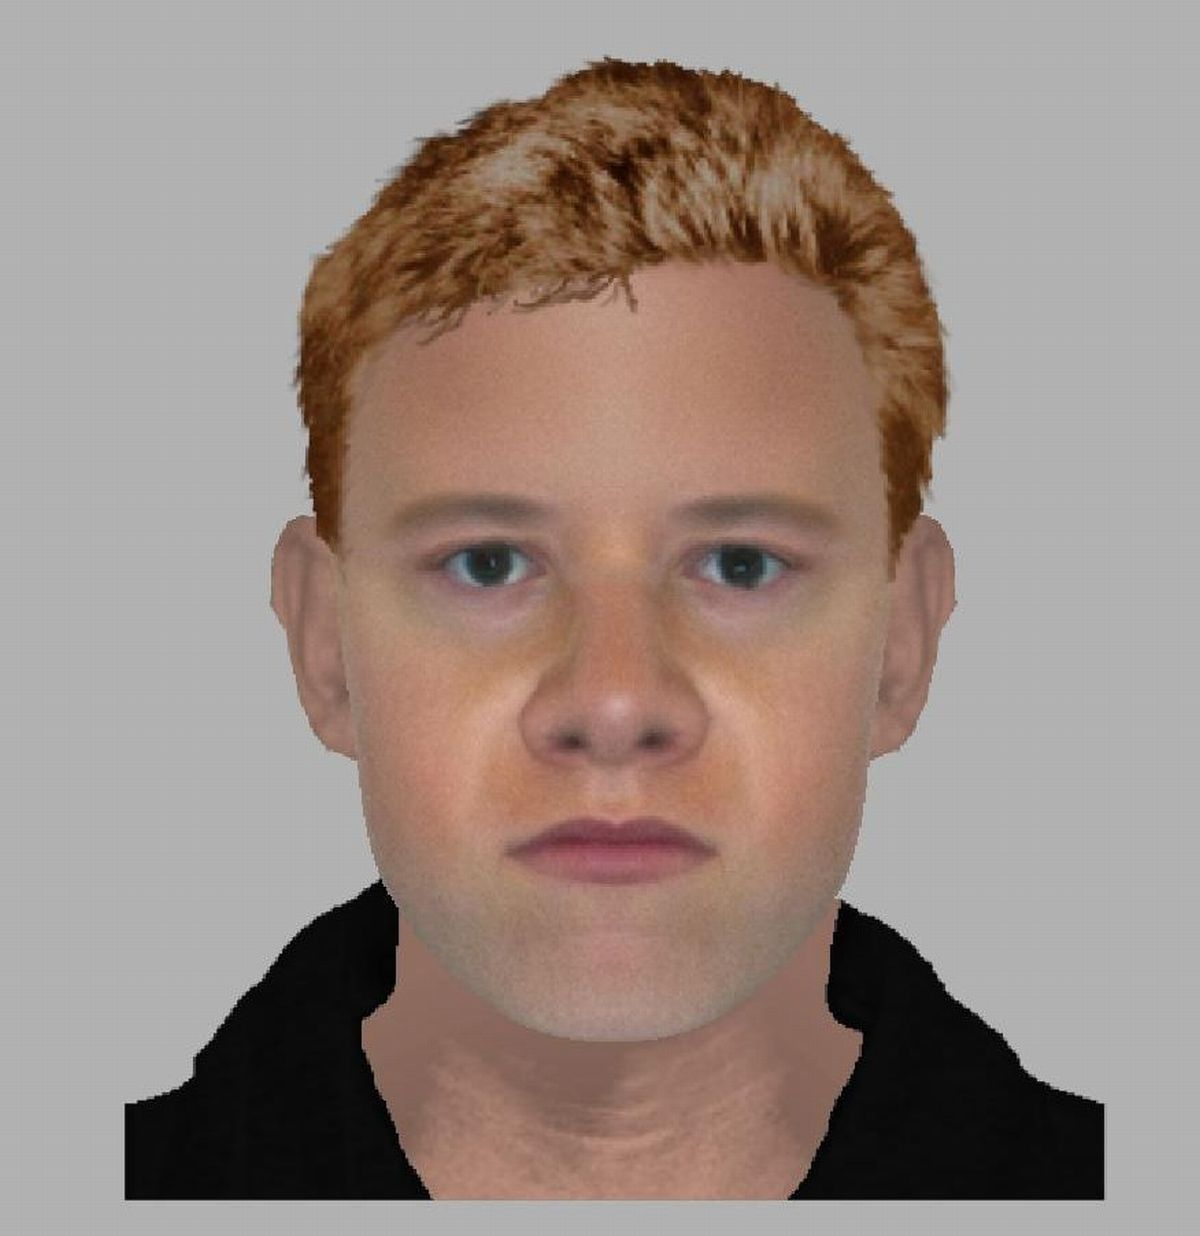 An efit of the alleged attacker in Airlie Road